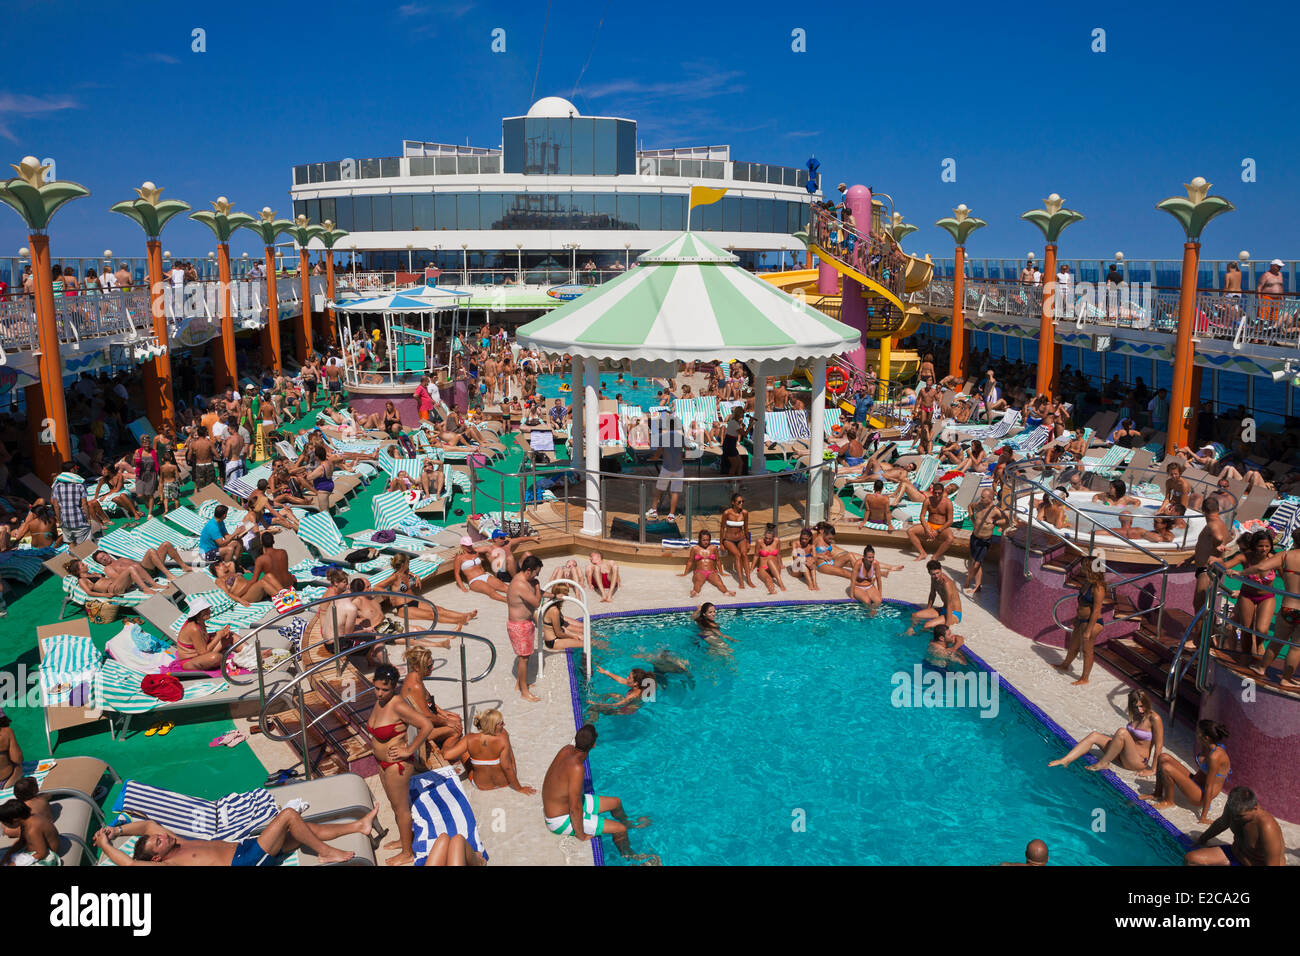 Greece The Cruise Ship Norwegian Jade The Upper Deck With Swimming Stock Photo Alamy